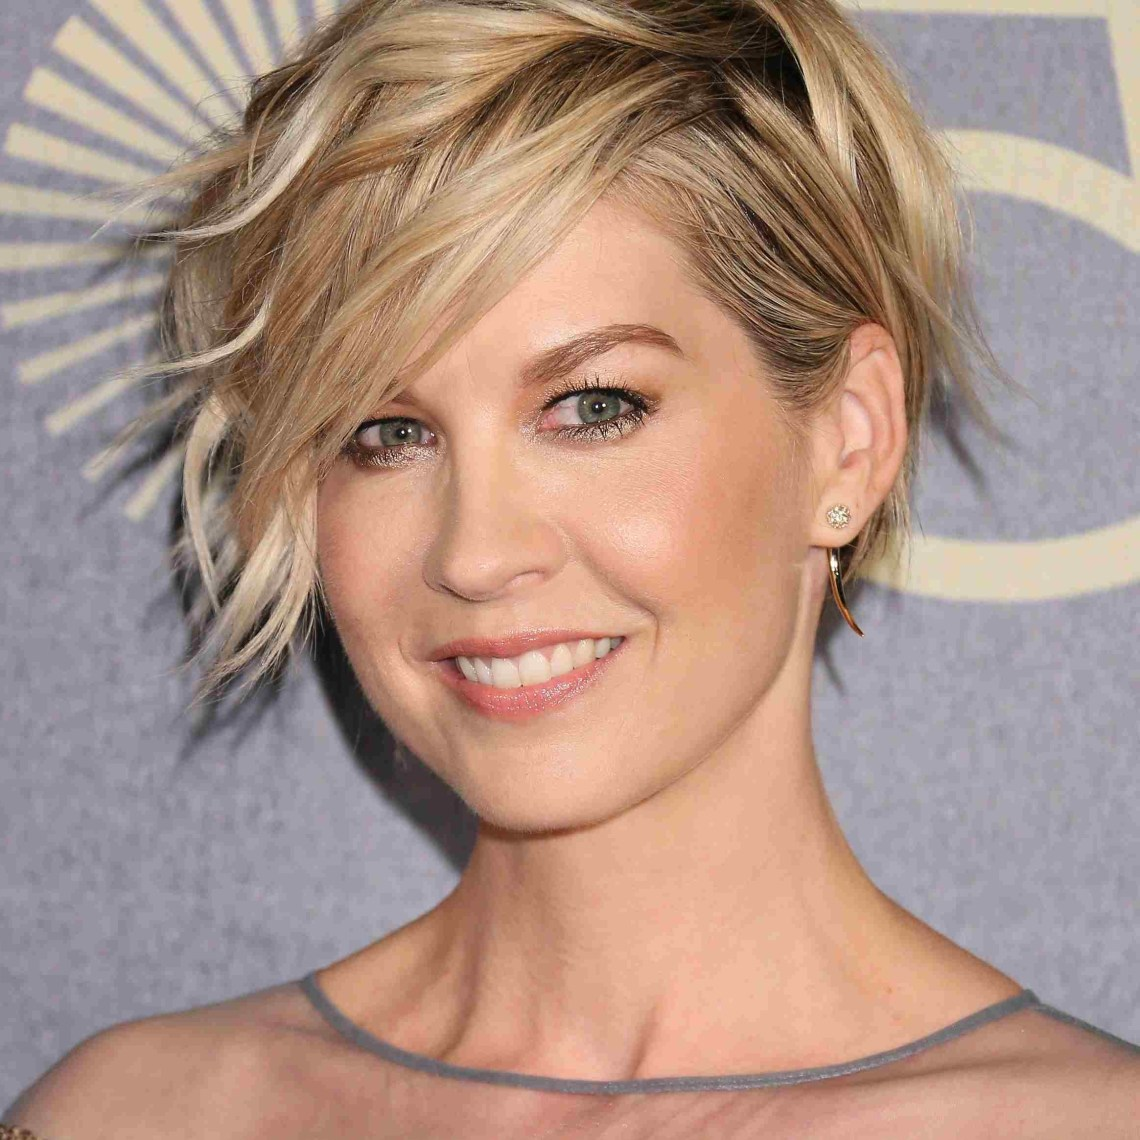 23 Flattering Hairstyles For Oval Faces 30+ Amazing Oval Face Low Maintenance Medium Length Hairstyles